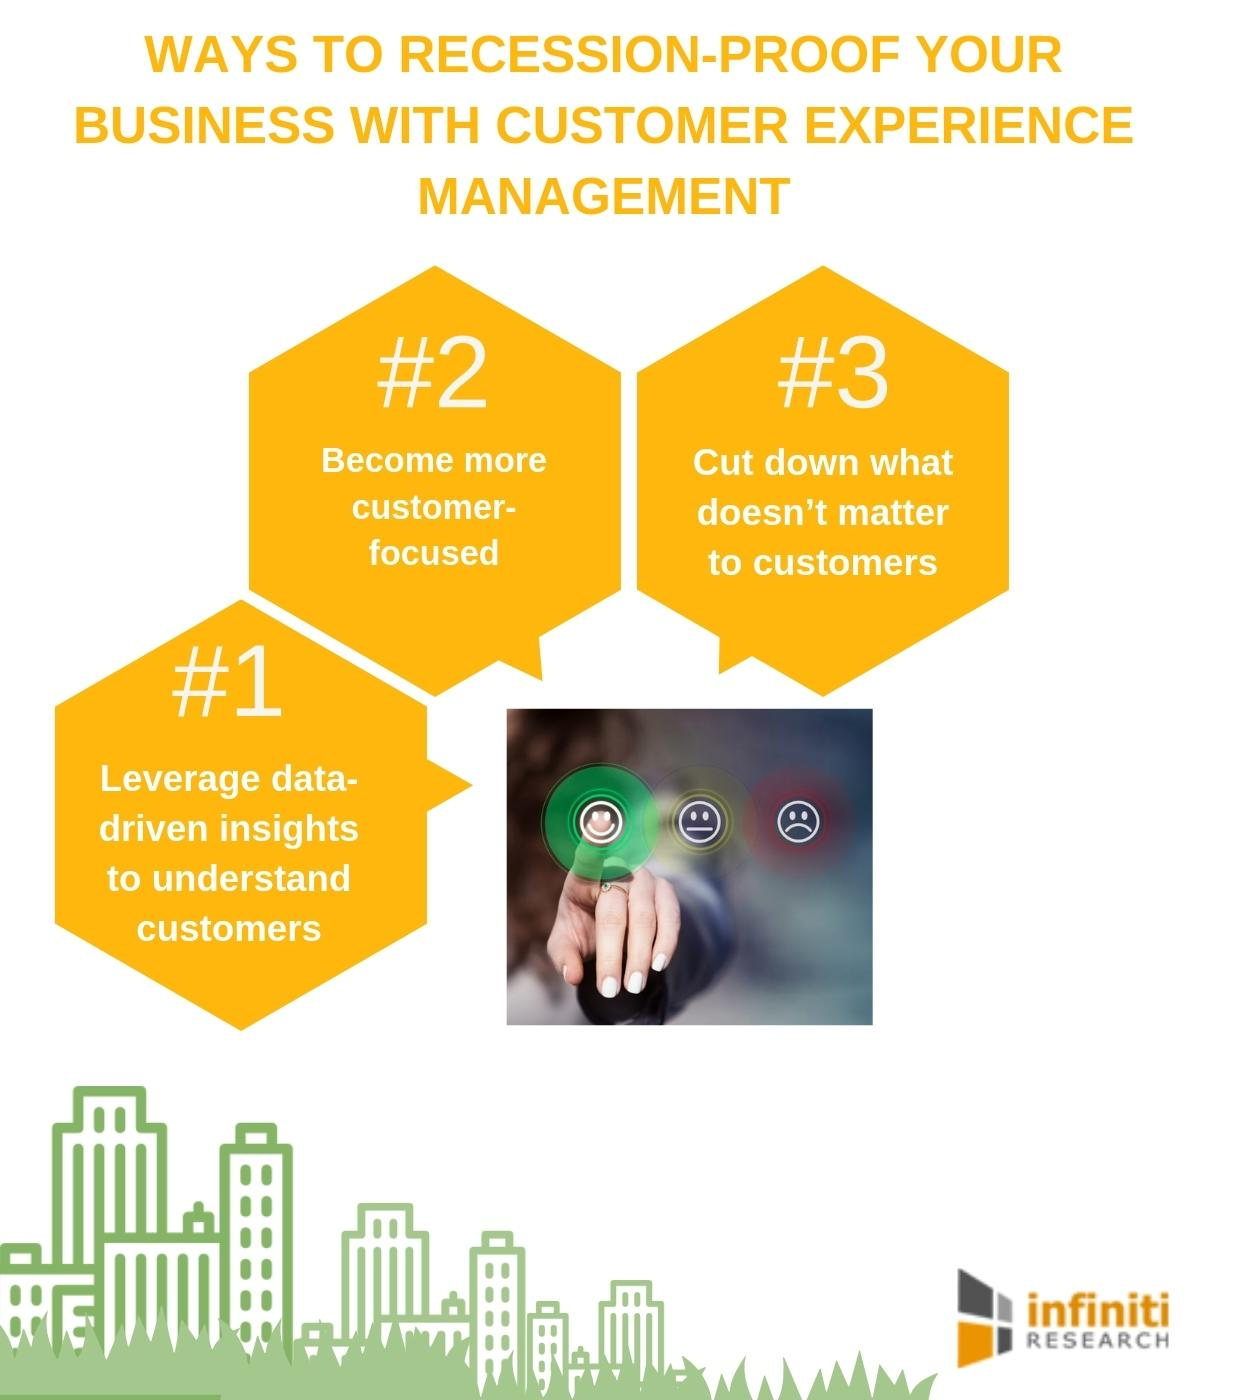 How Customer Experience Management Can Help Recession-Proof Your Business | Infiniti Research's Latest Blog Explains